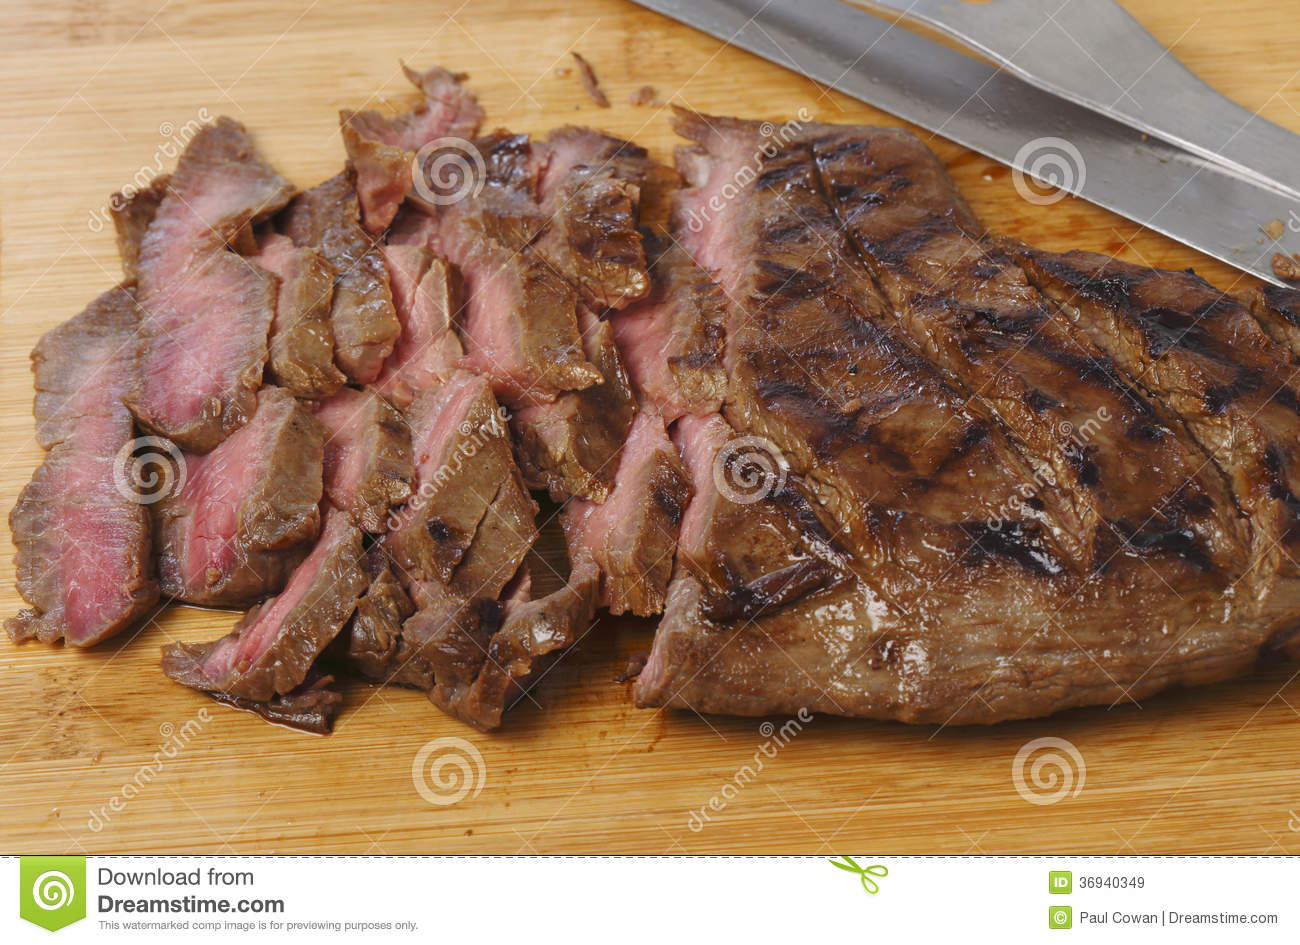 Marinaded flank steak, or London broil, sliced thinly against the ...